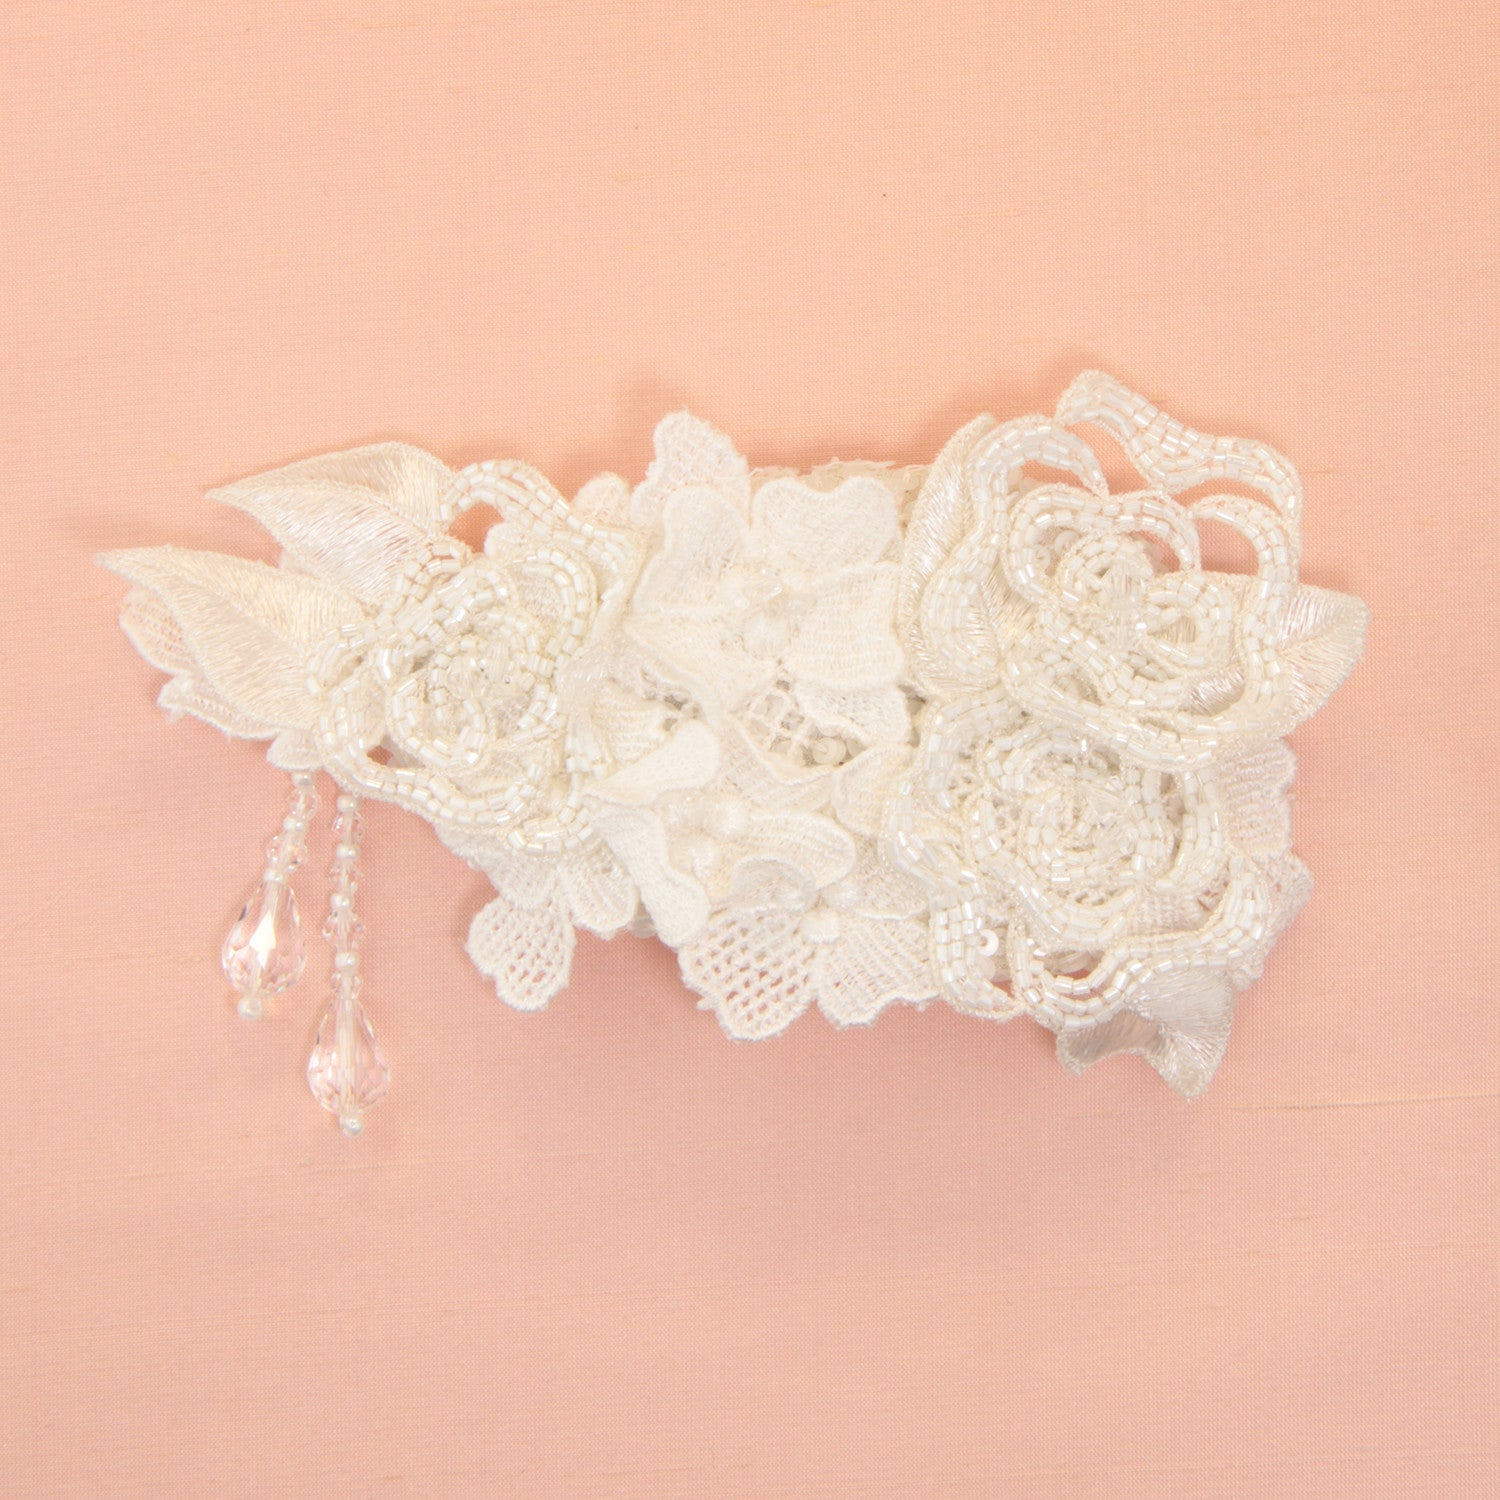 Dajana Bridal Headpiece - Hair Accessories - Hair Comb - Roman & French